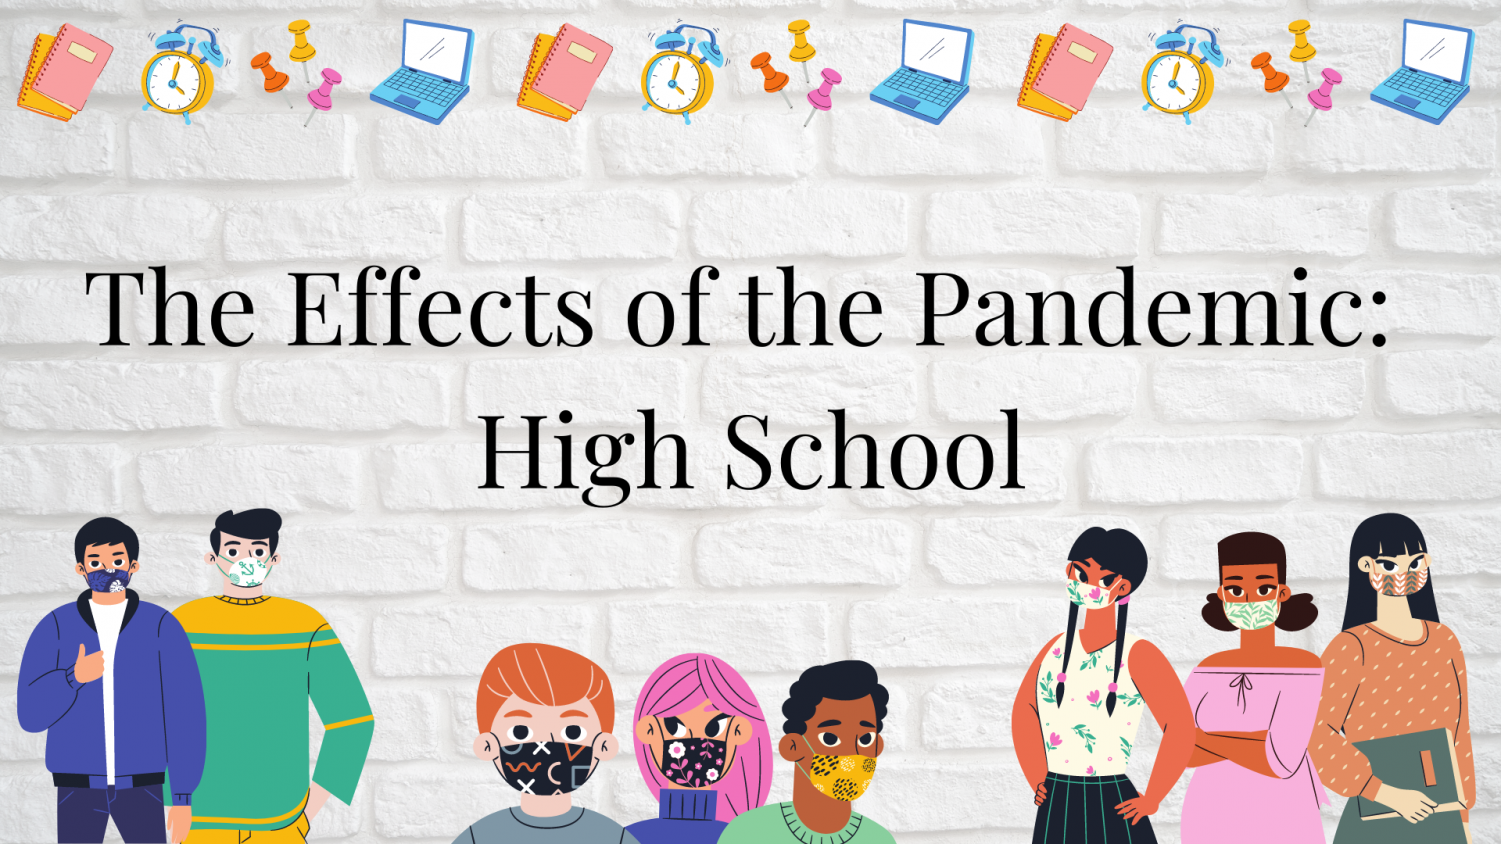 The effects of the pandemic: high school